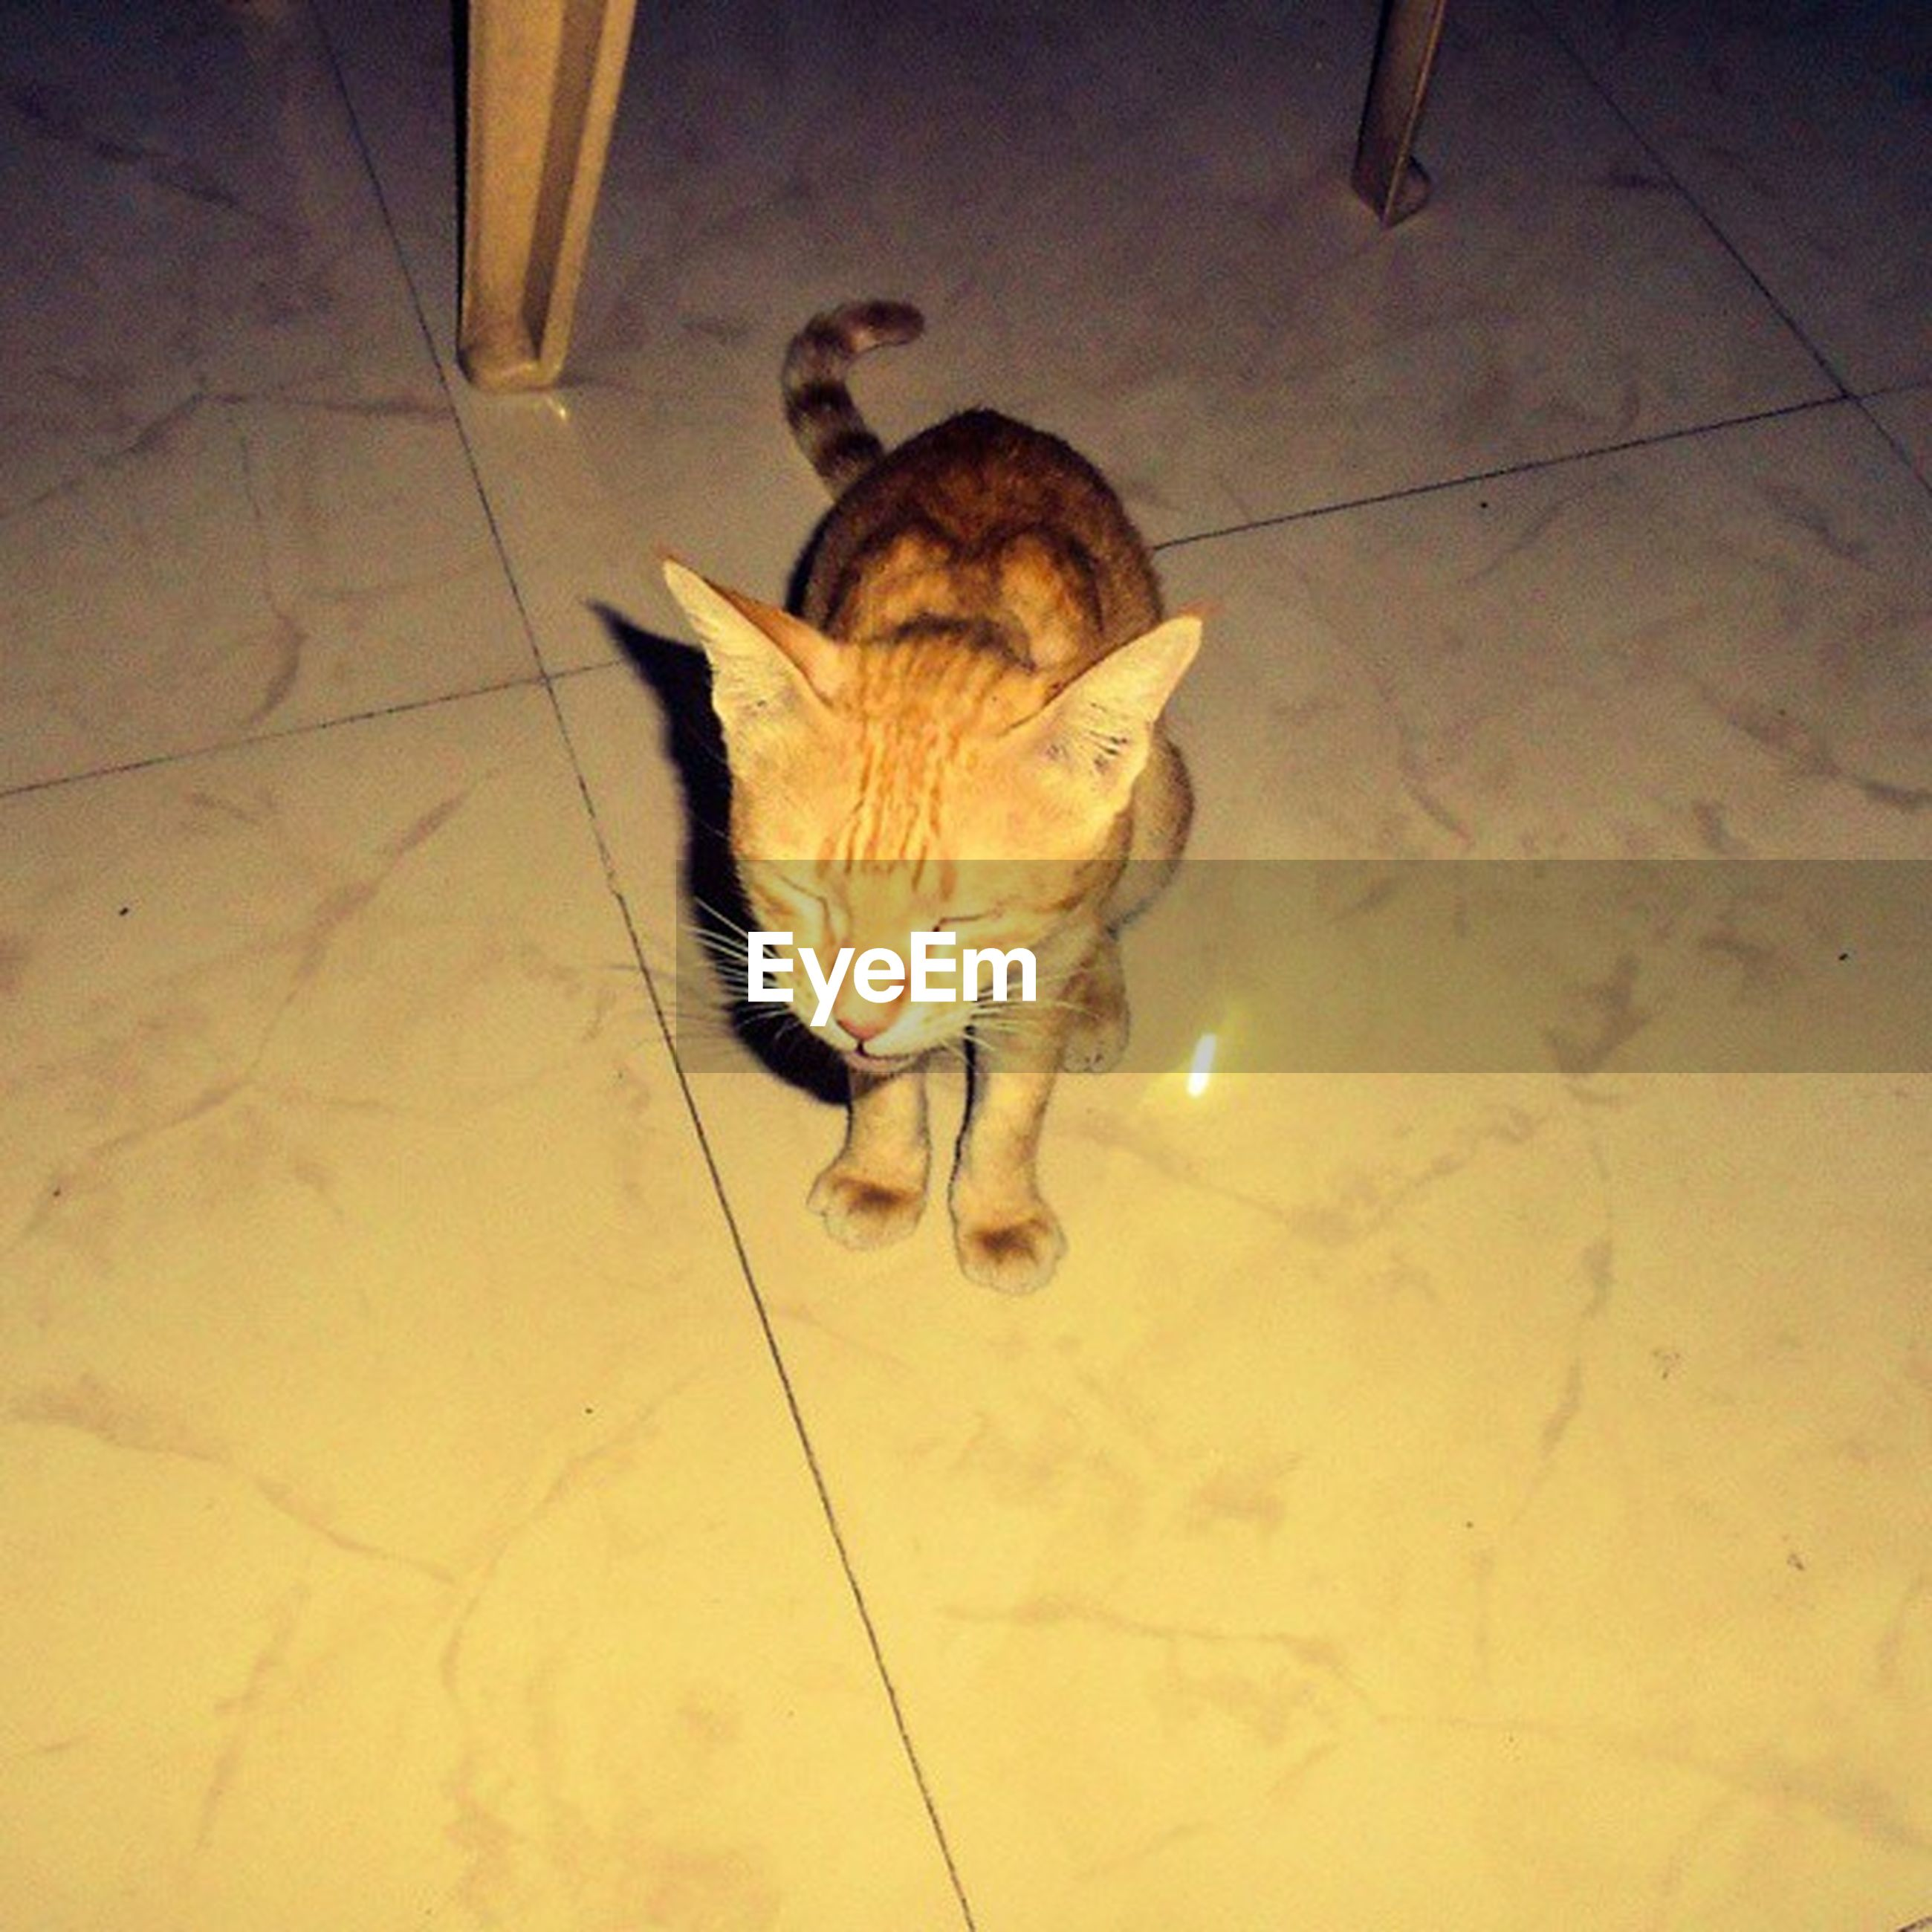 animal themes, one animal, wildlife, indoors, animals in the wild, high angle view, bird, flooring, full length, shadow, tiled floor, zoology, sunlight, no people, domestic animals, floor, two animals, day, dead animal, young animal